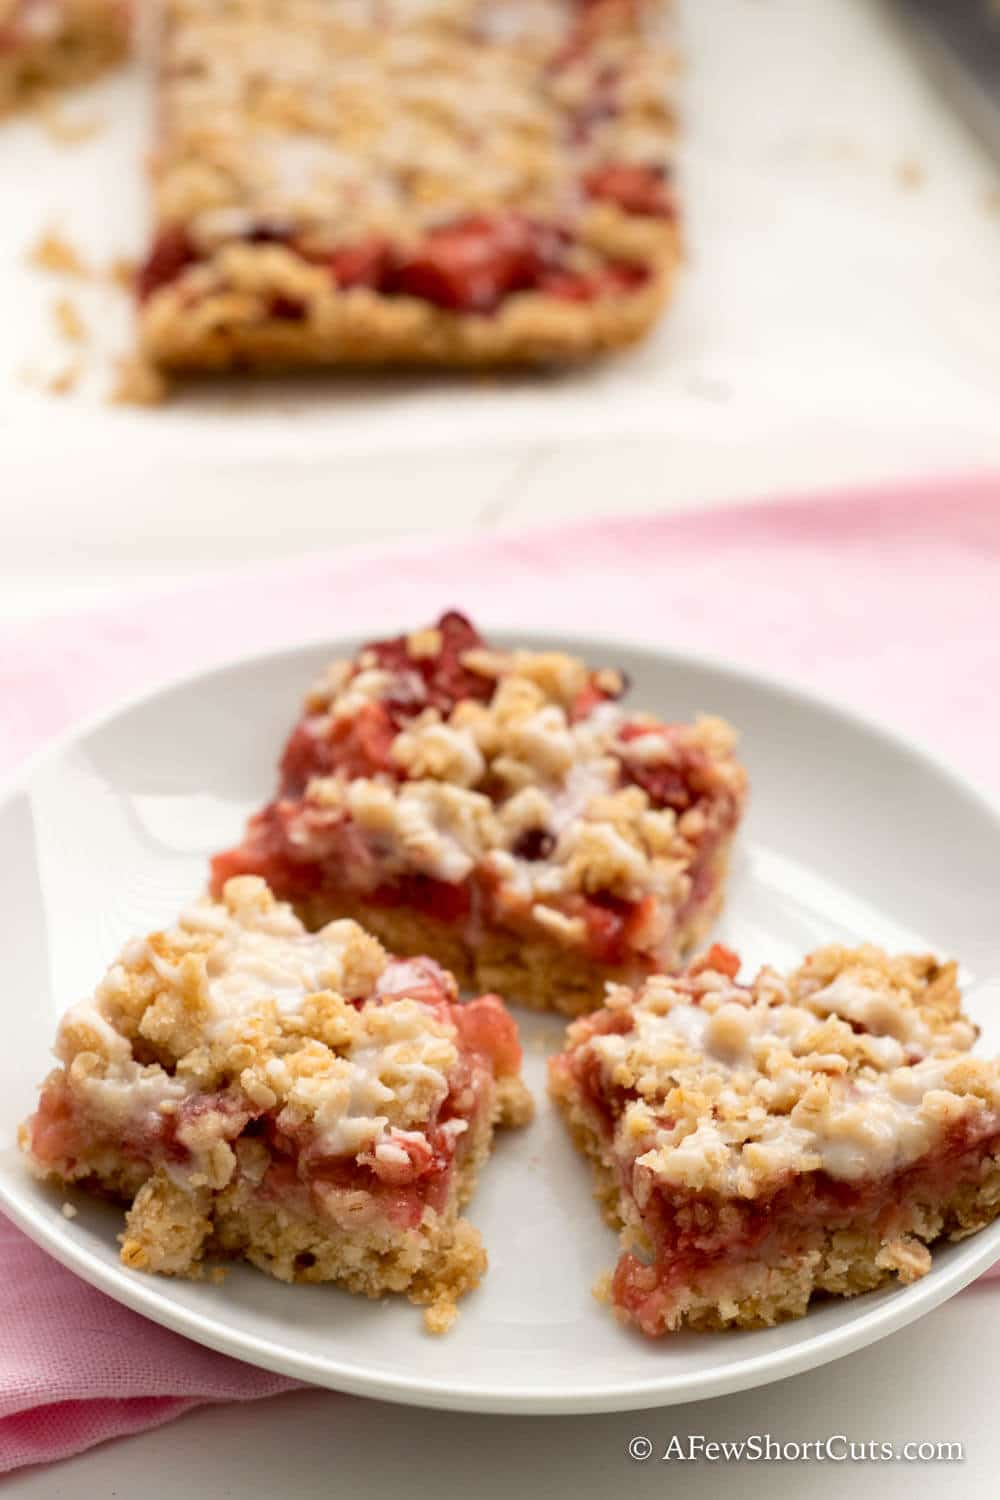 Strawberry Oatmeal Bars Recipe is a simple and tasty way to offer something special for breakfast or a snack. Comes with Gluten free and dairy free versions too!